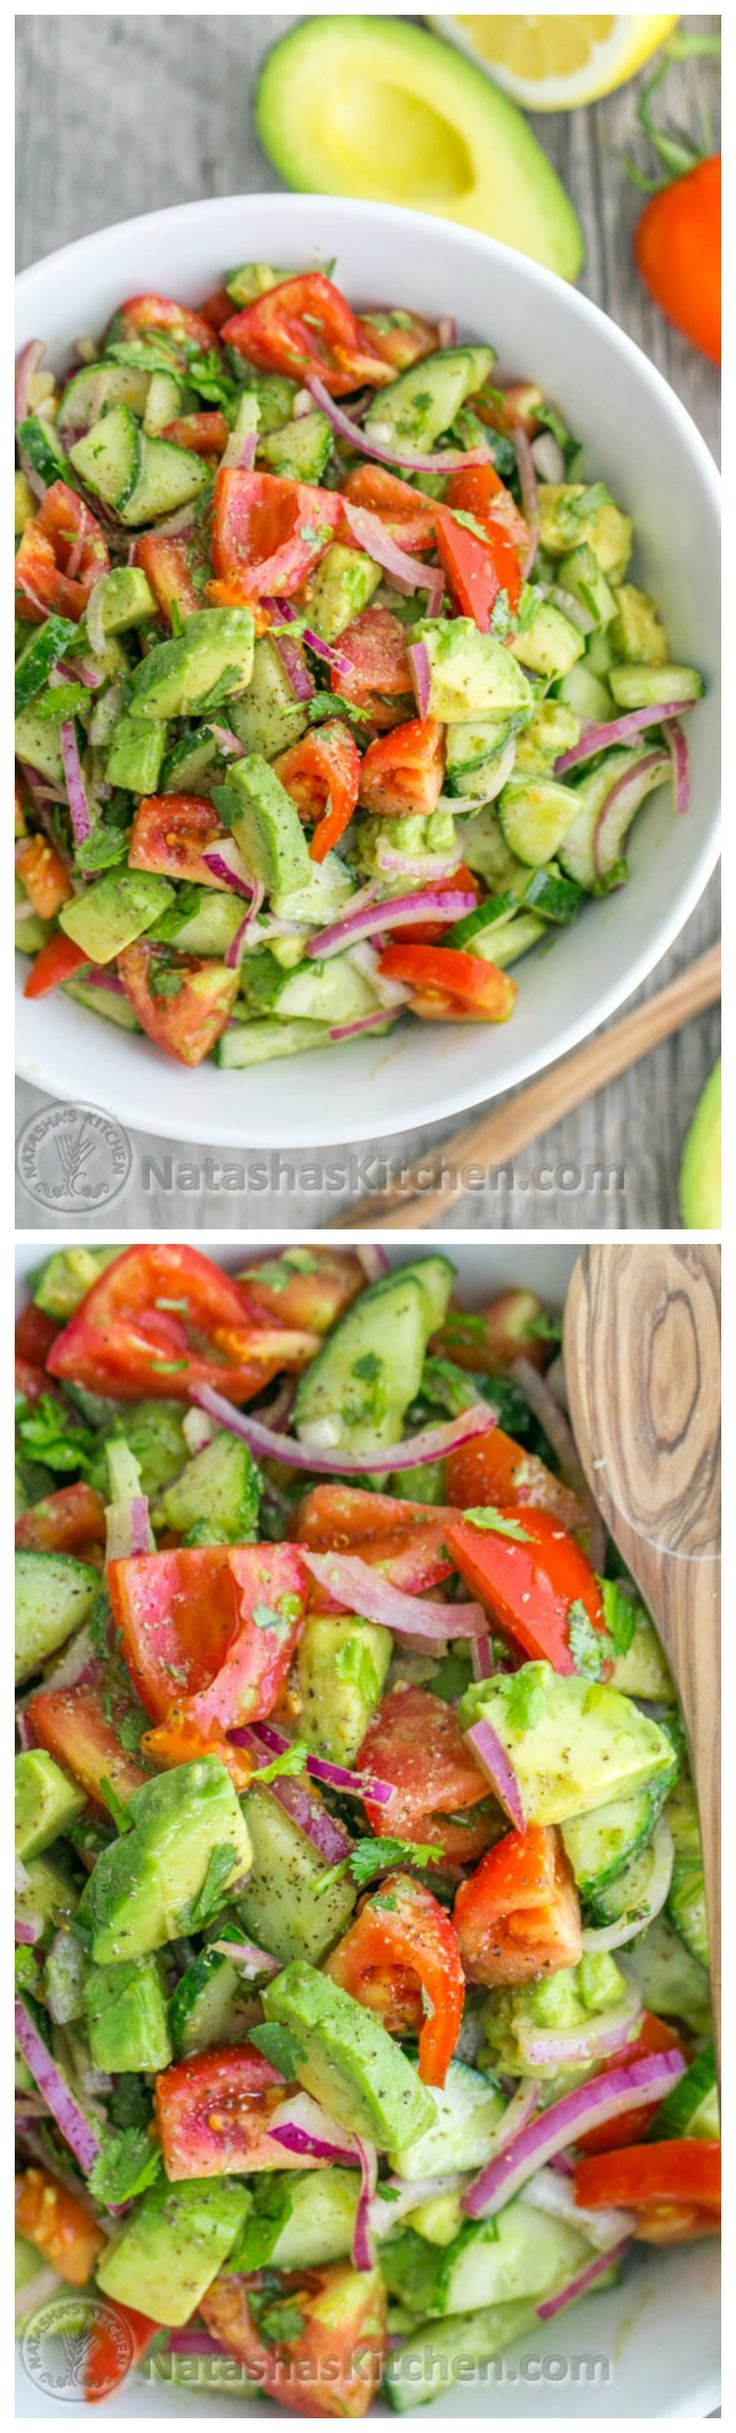 This Cucumber Tomato Avocado Salad recipe is a keeper! Easy, Excellent Salad | @andwhatelse